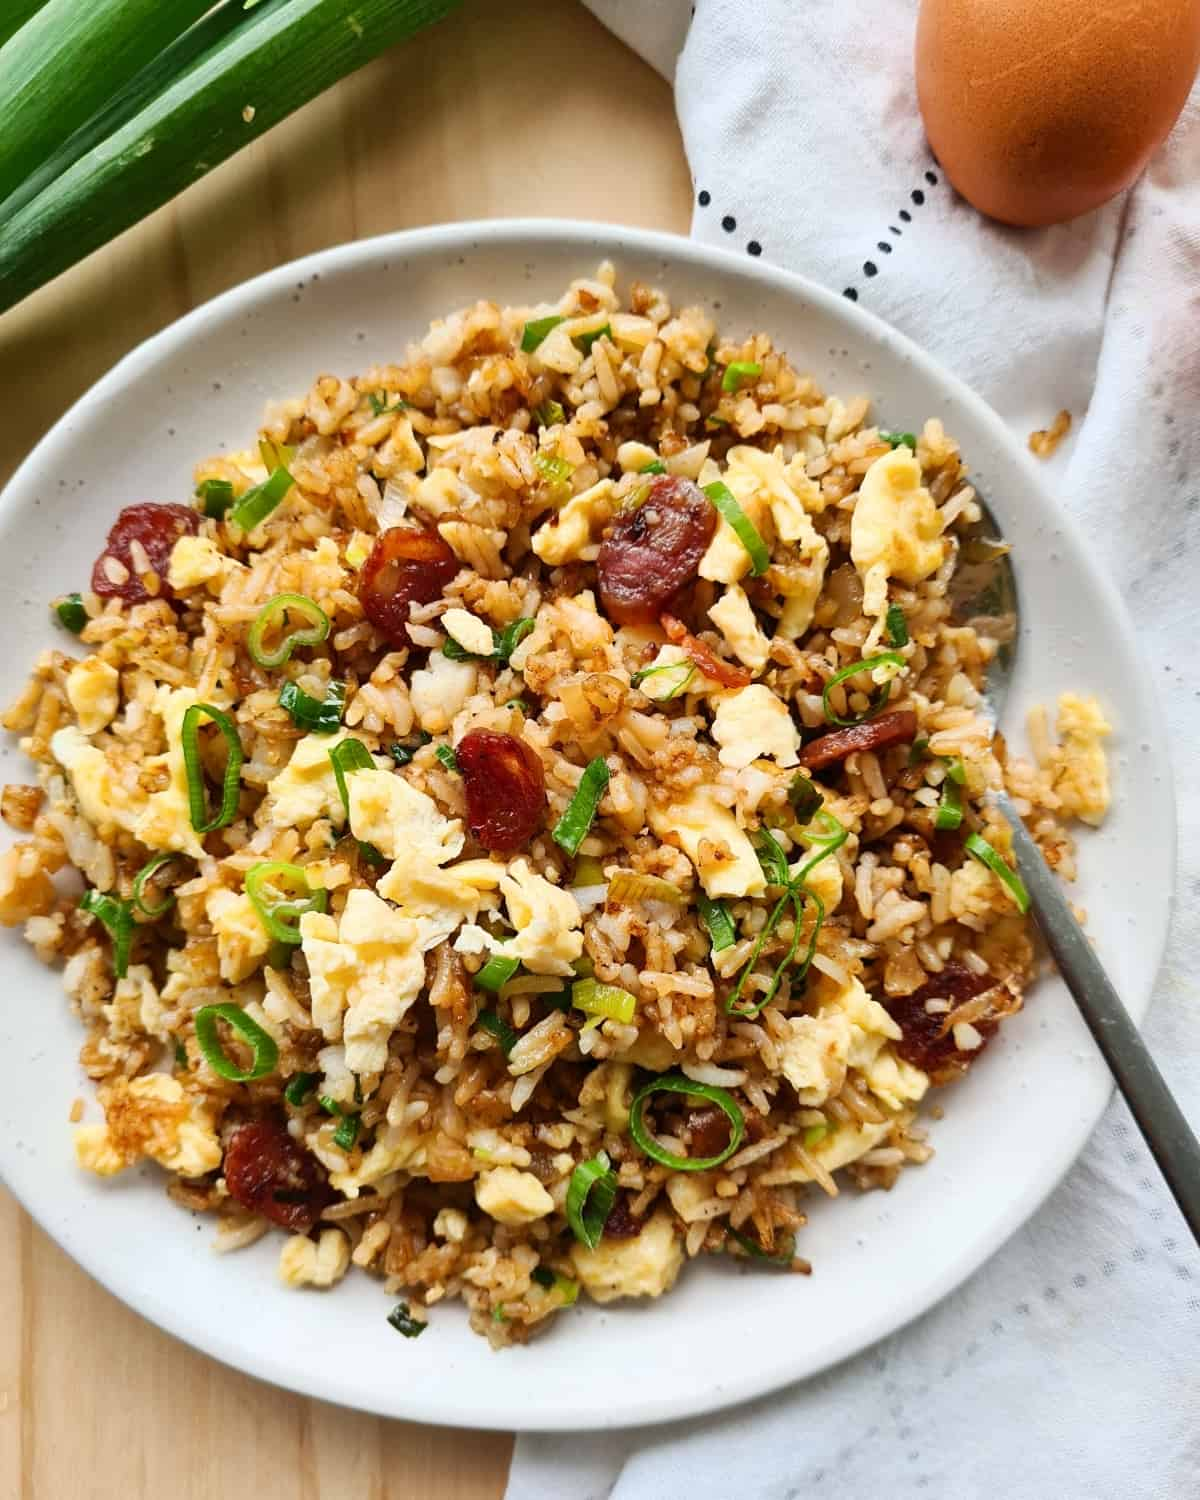 Overhead shot of a plate of Chinese sausage fried rice with a spoon on the plate.